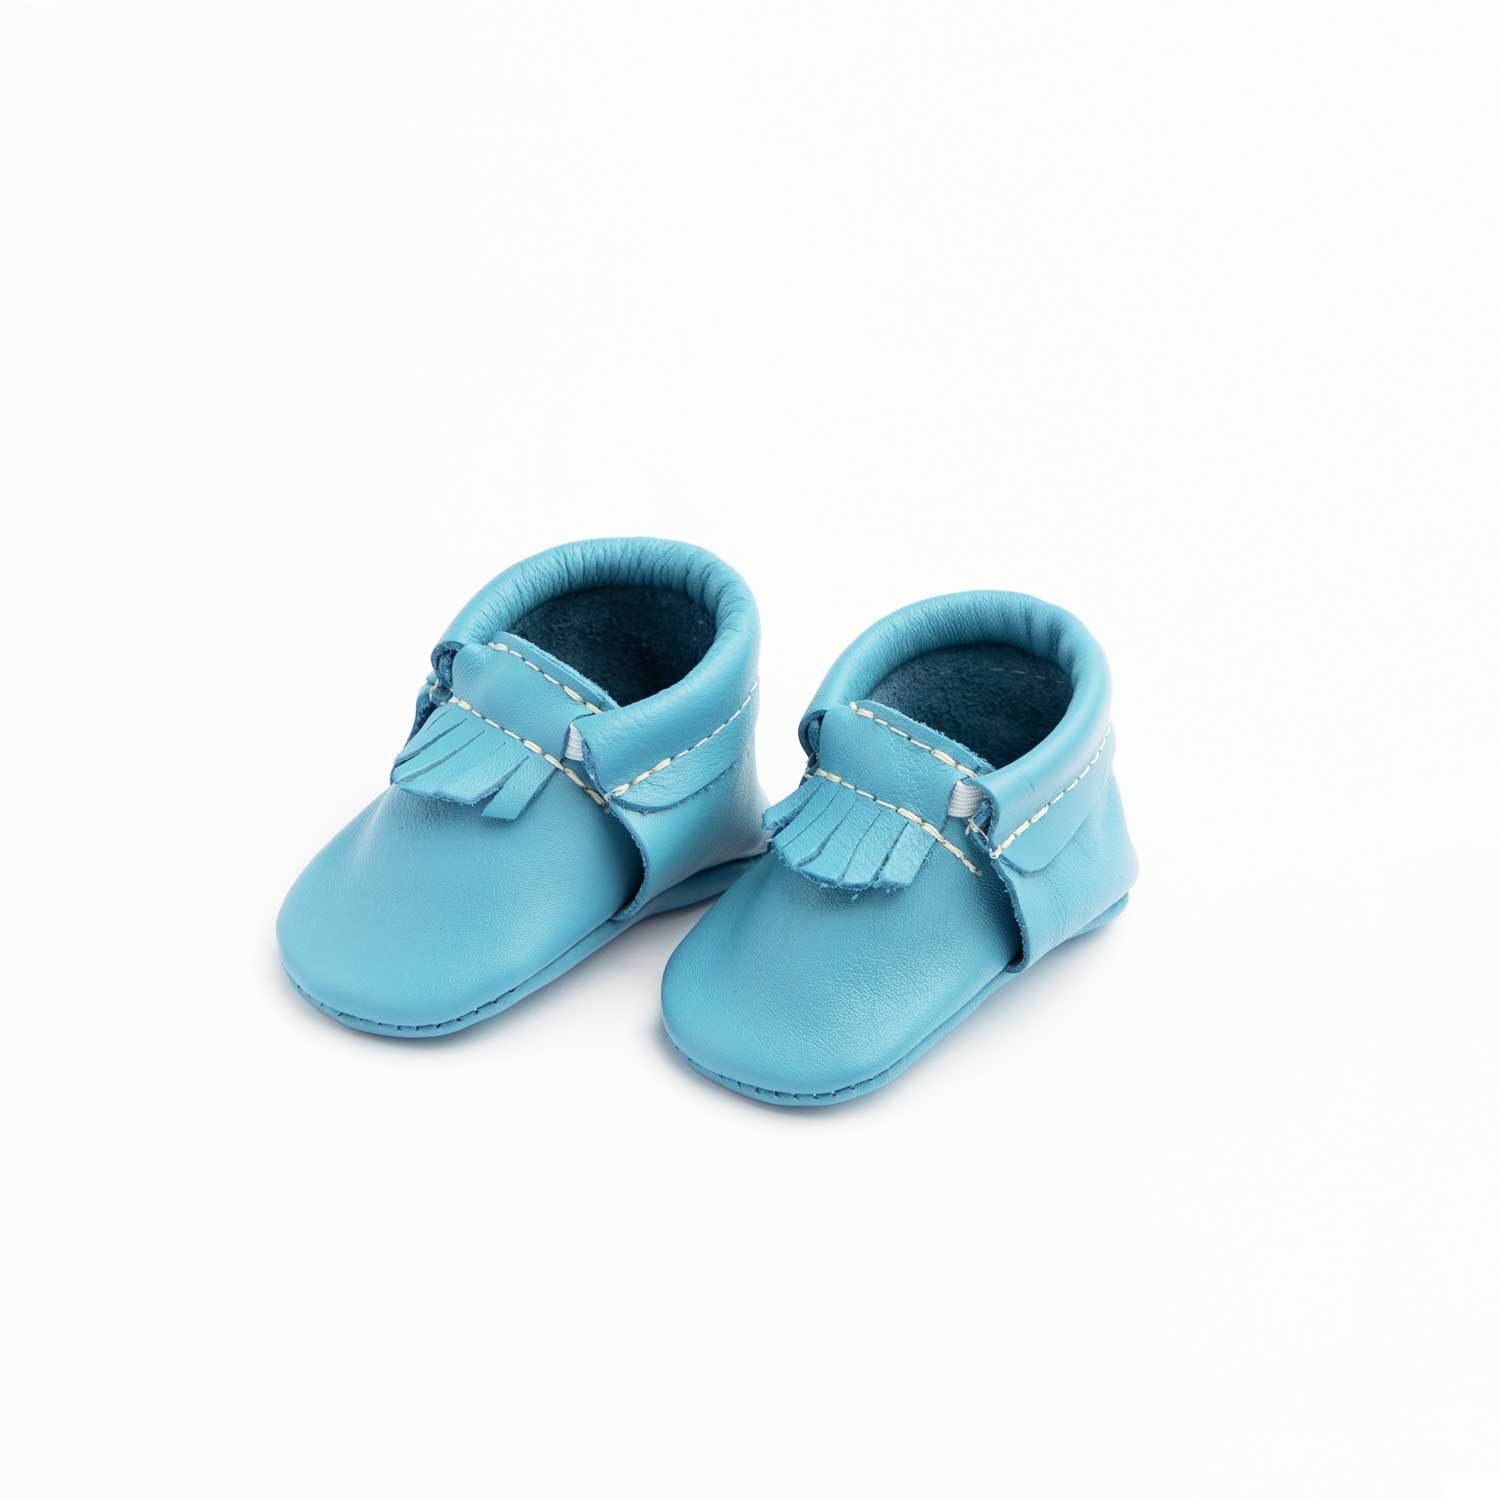 Newborn Chambray City Mocc newborn city mocc Soft Soles